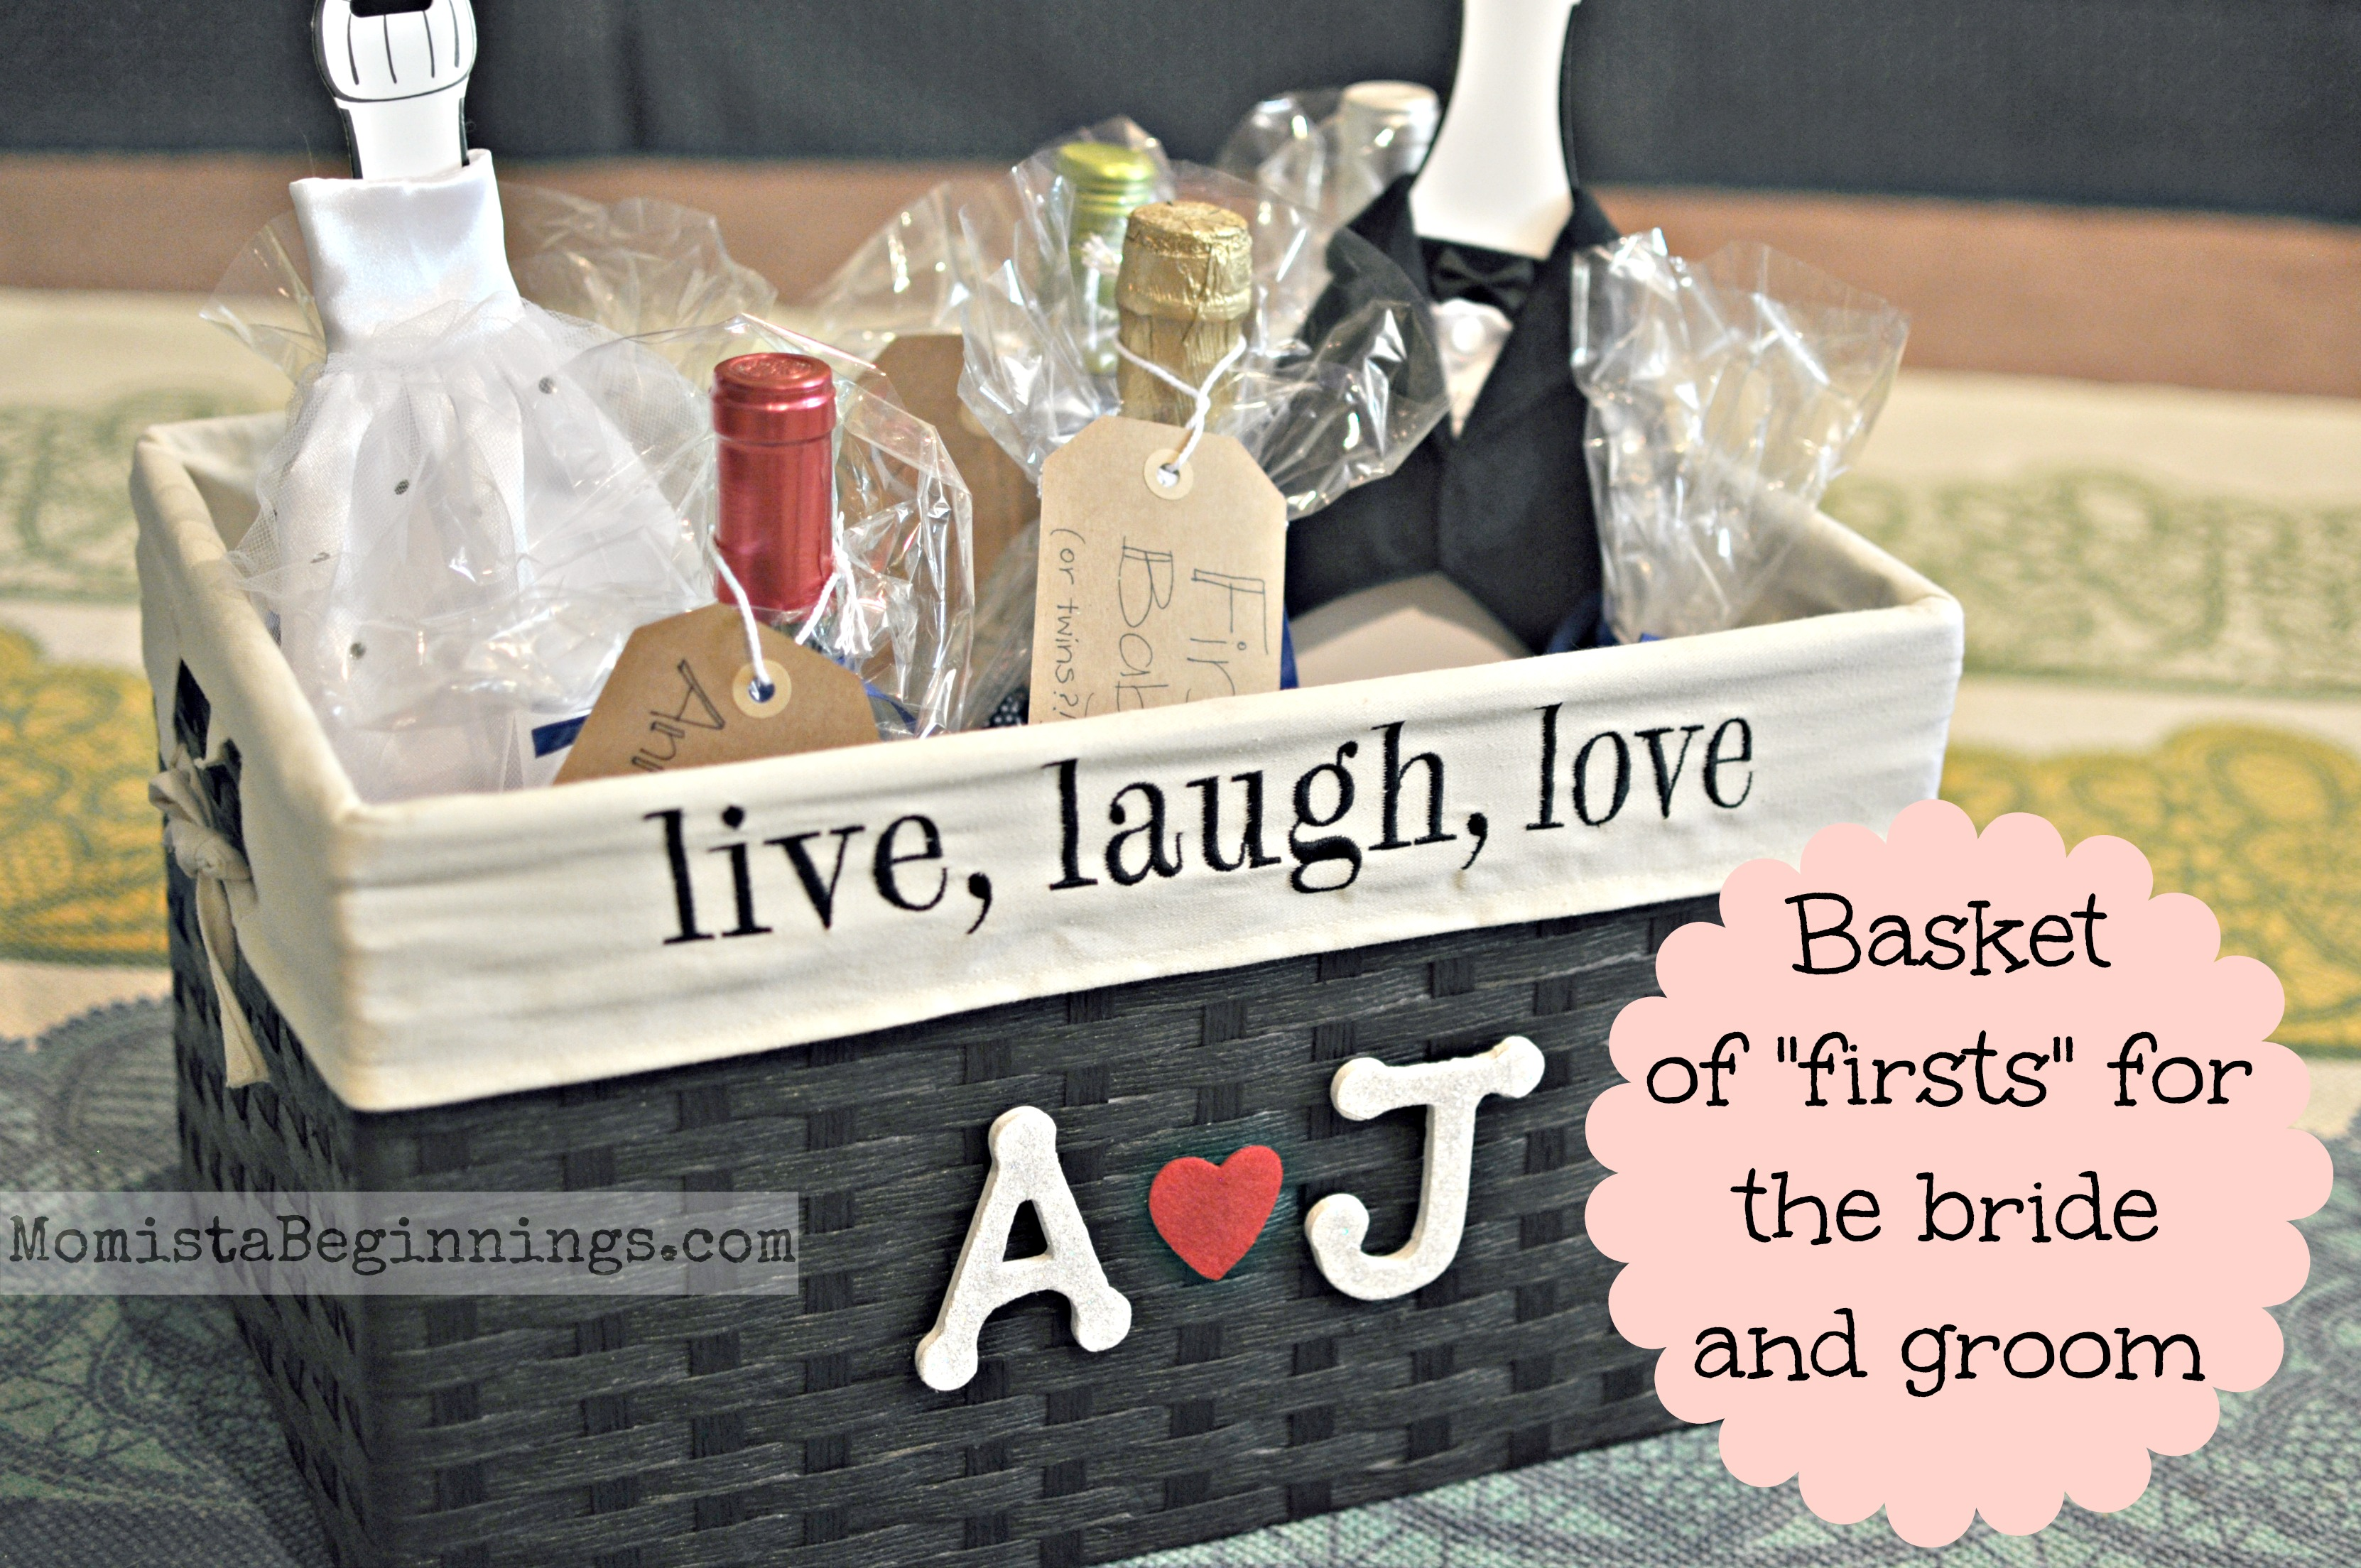 A Wedding Present For The Bride : The basket and the letters on the basket (which I glued) are from ...